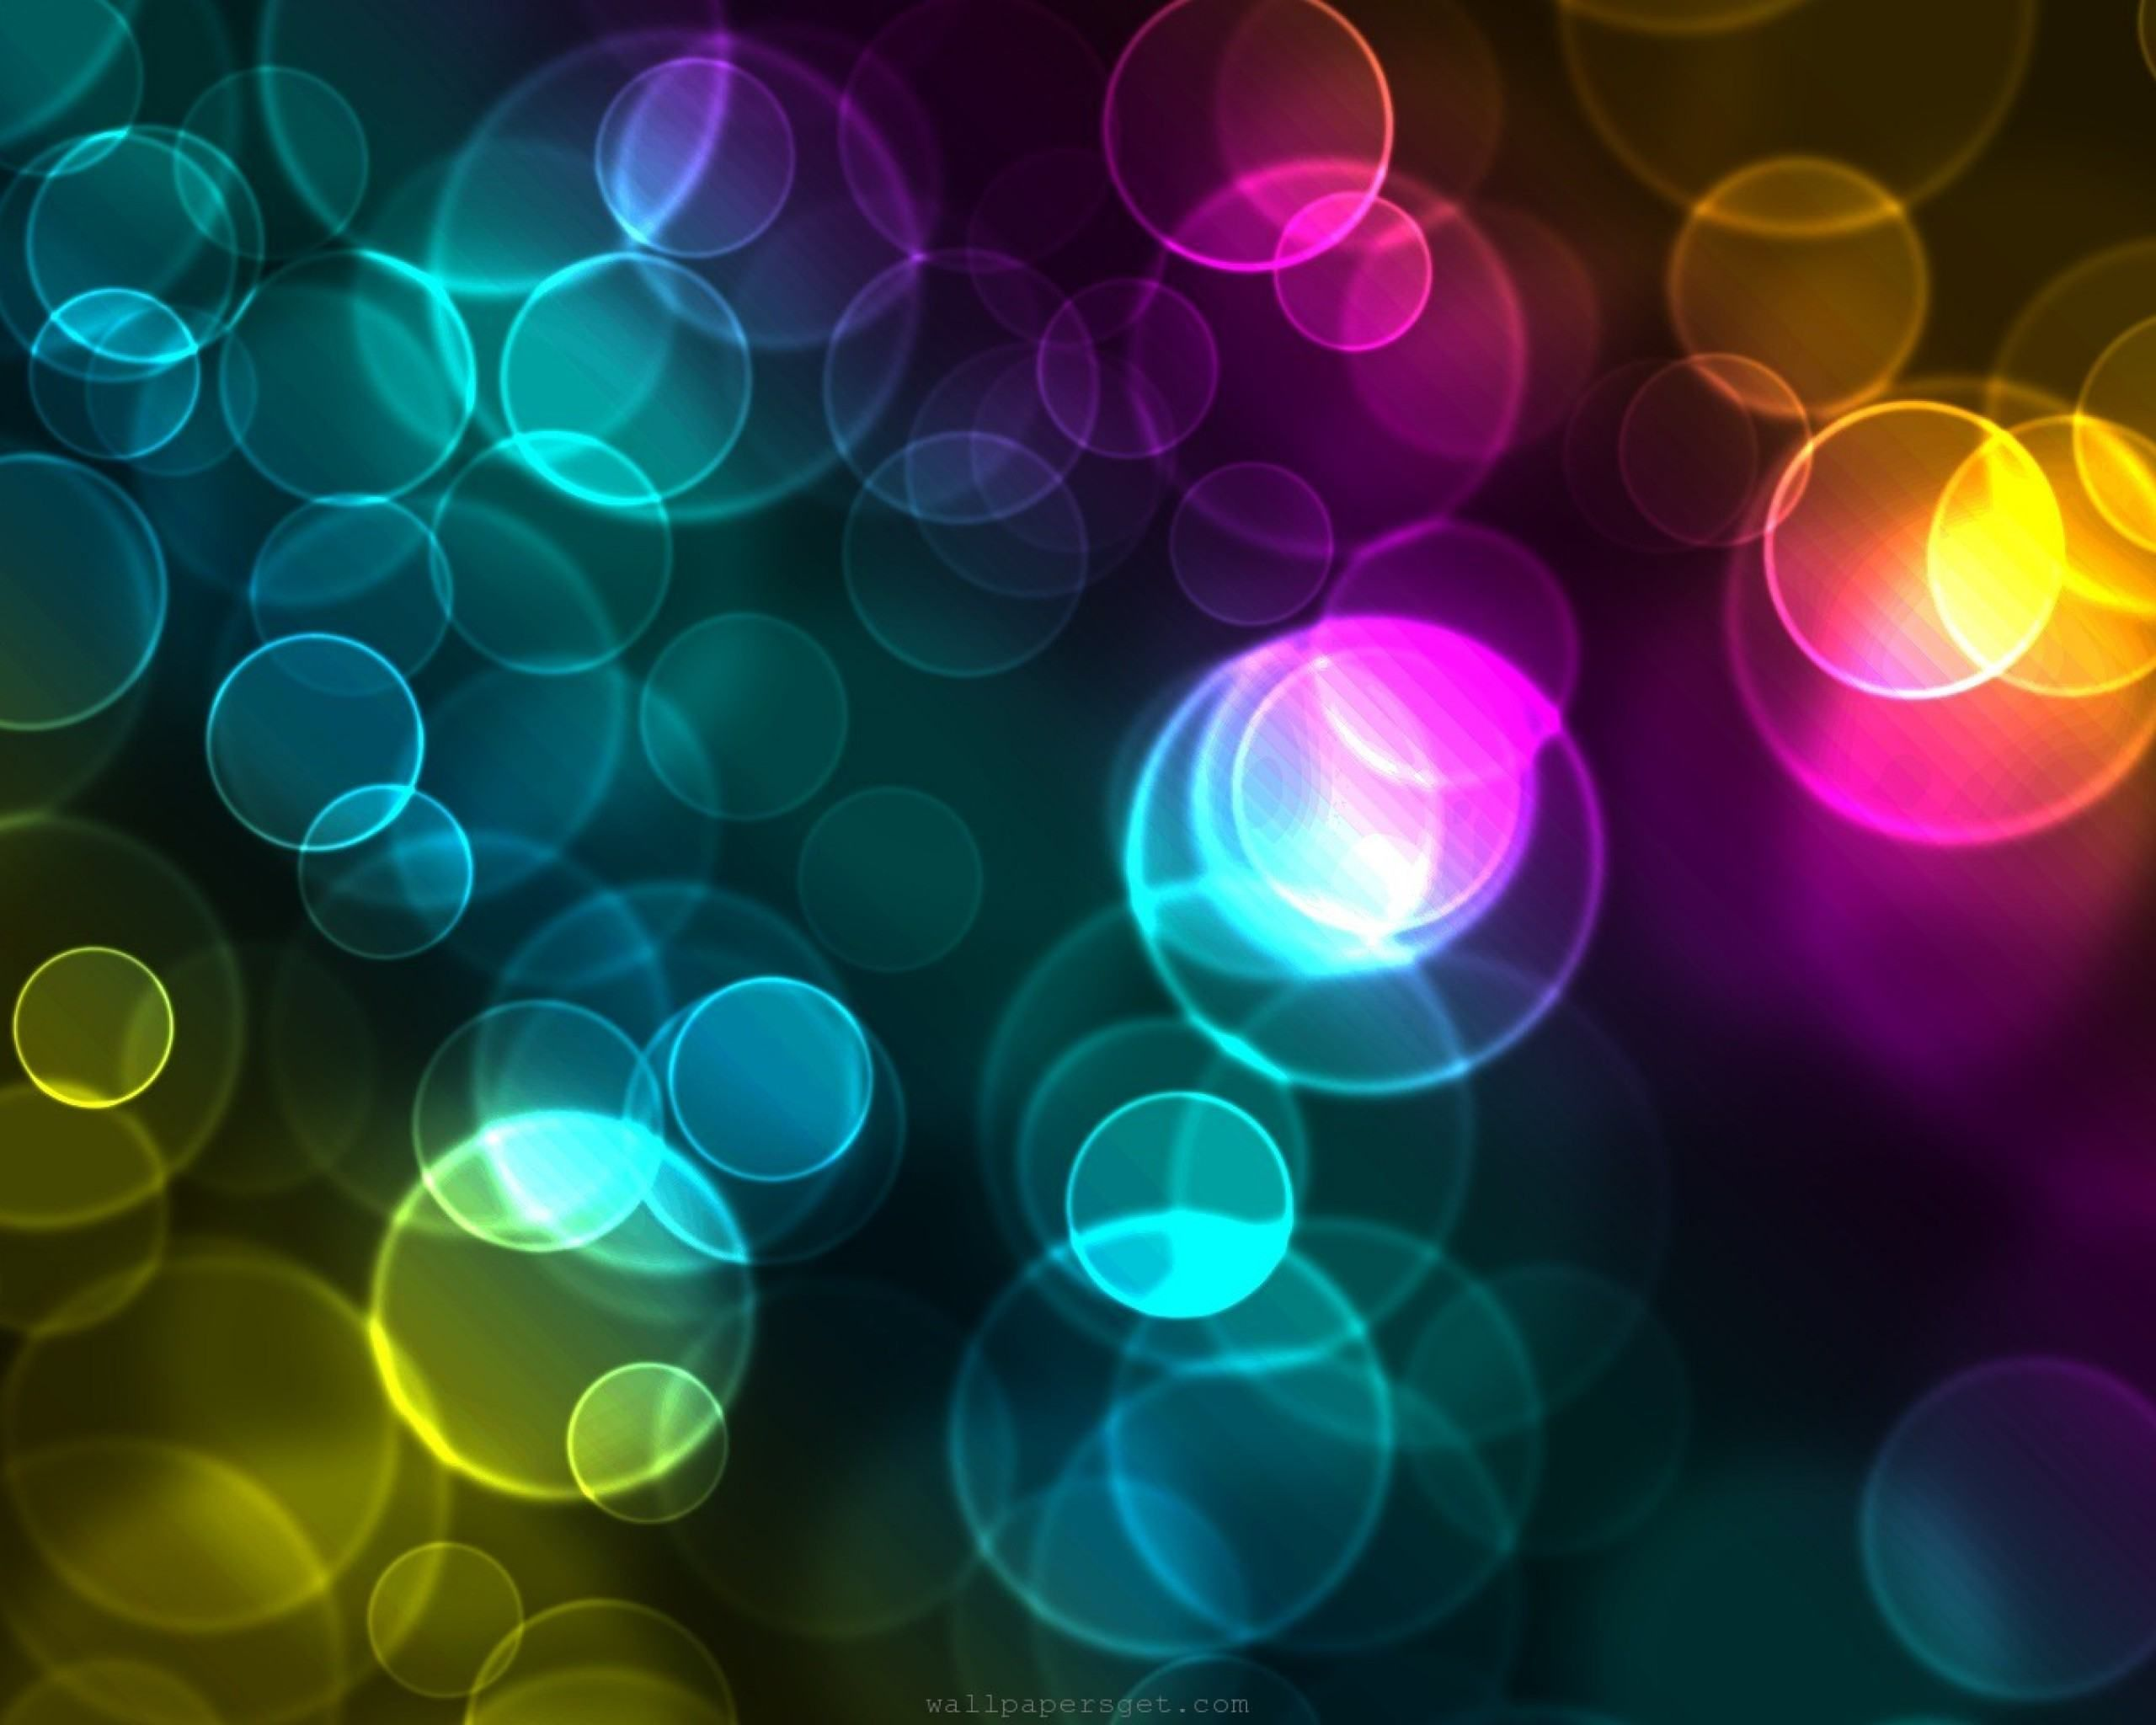 colourful images colourful backgrounds for pc full hd top | hd